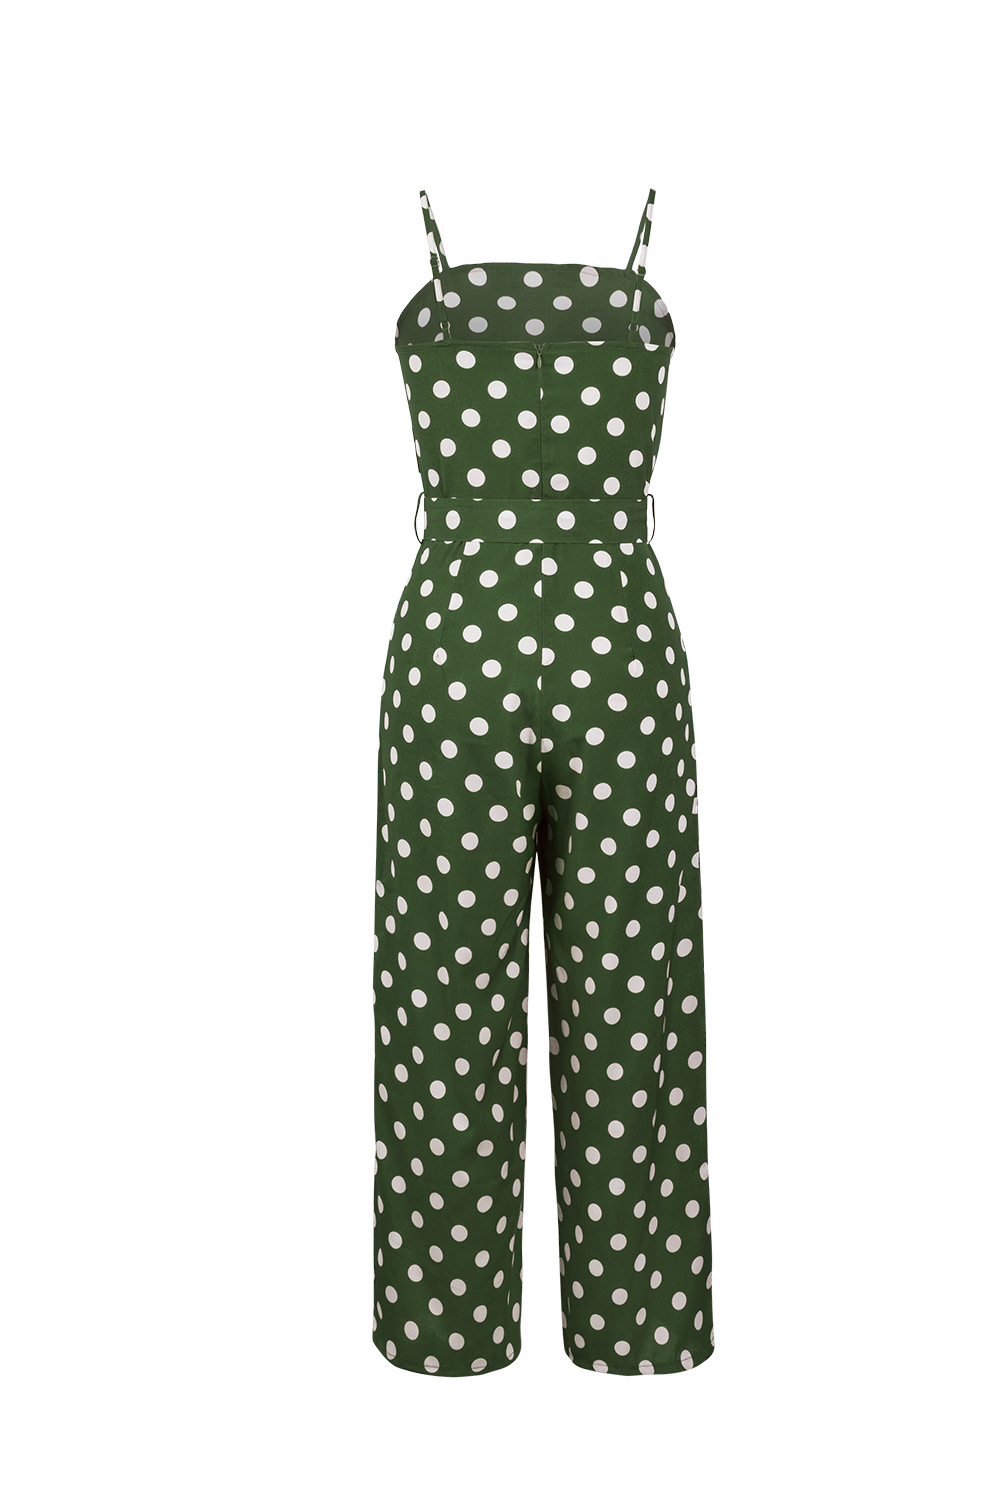 HTB1FGEYbfjsK1Rjy1Xaq6zispXaq - Women Rompers summer long pants elegant strap woman jumpsuits polka dot plus size jumpsuit off shoulder overalls for womens